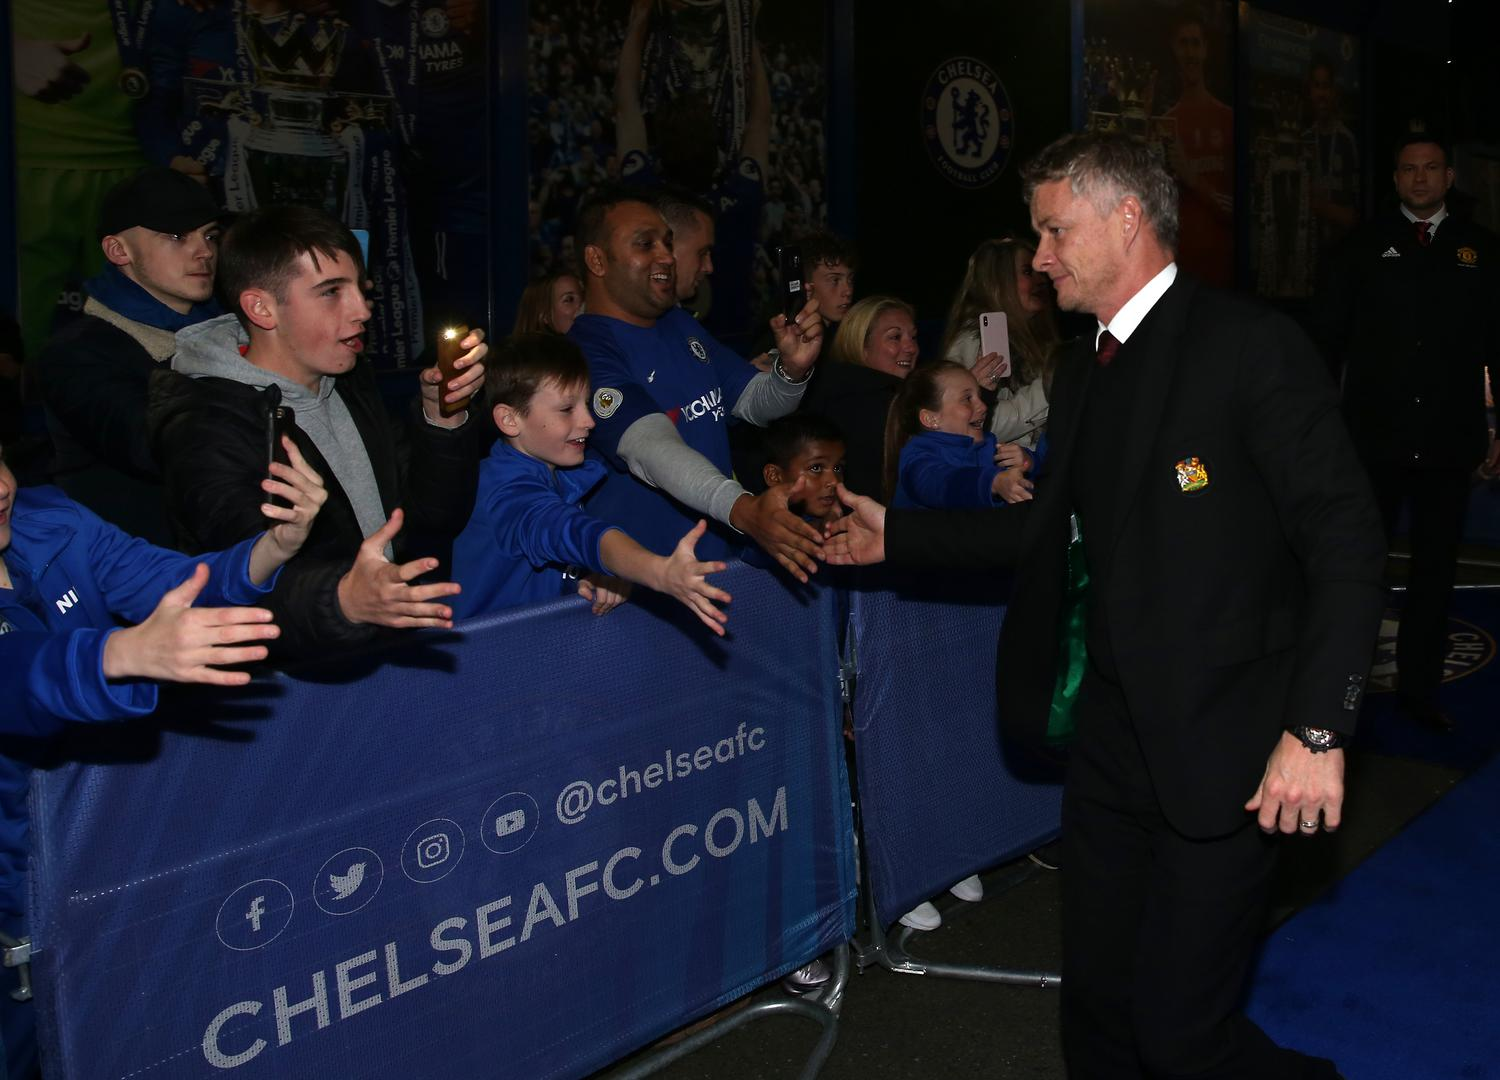 Ole Gunnar Solskjaer arrives at Stamford Bridge ahead of a game against Chelsea.